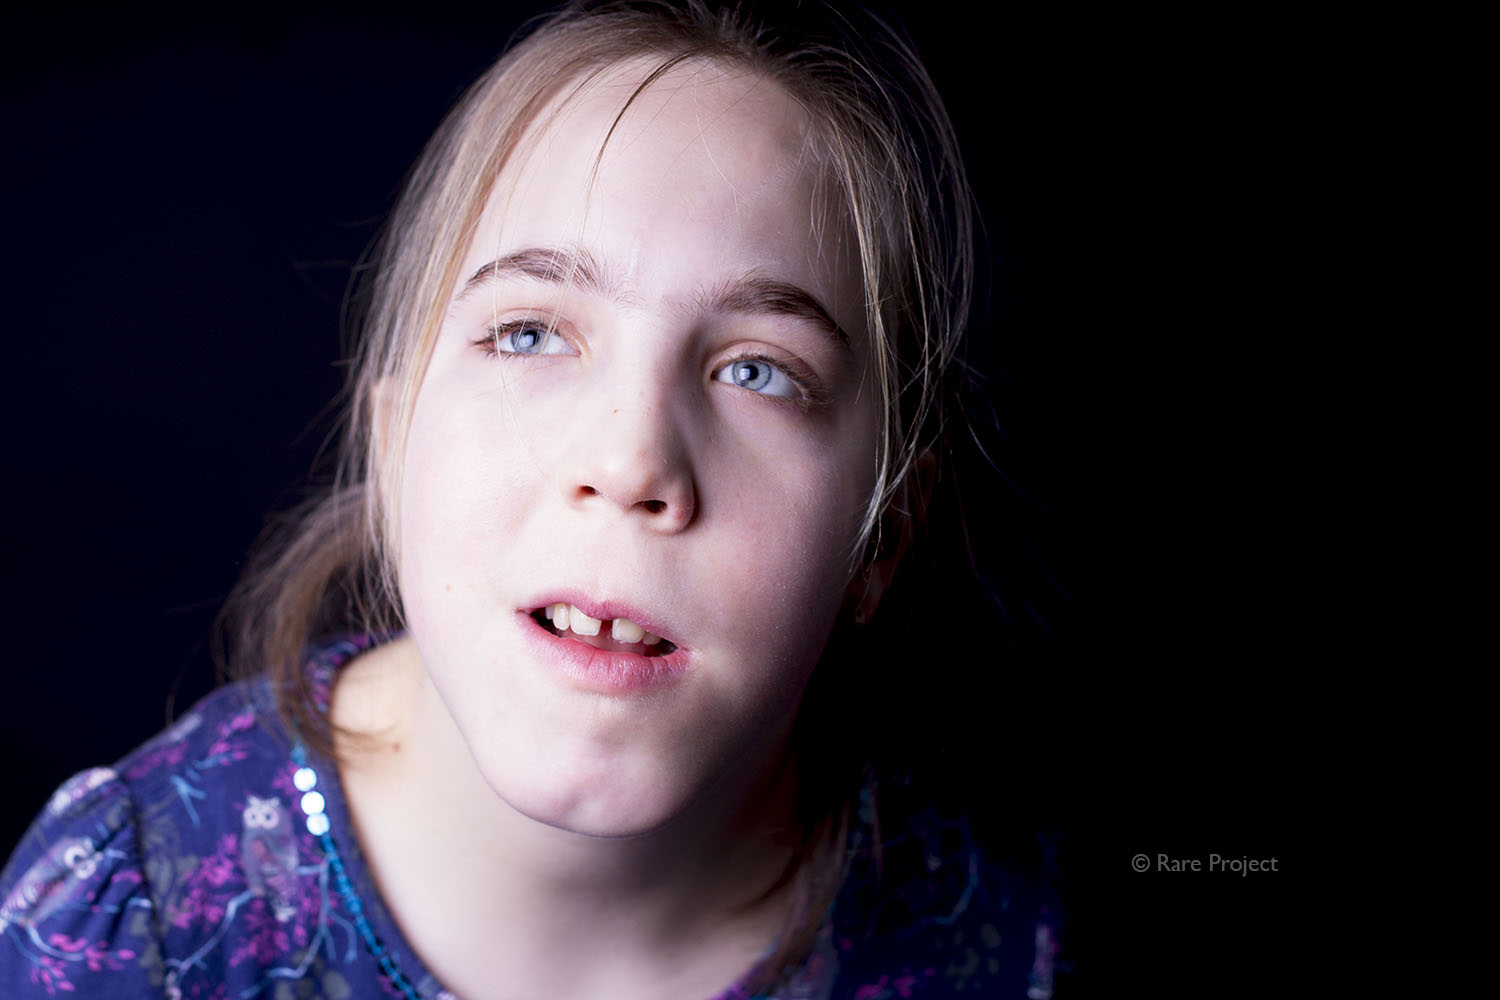 Young lady with Patau syndrome